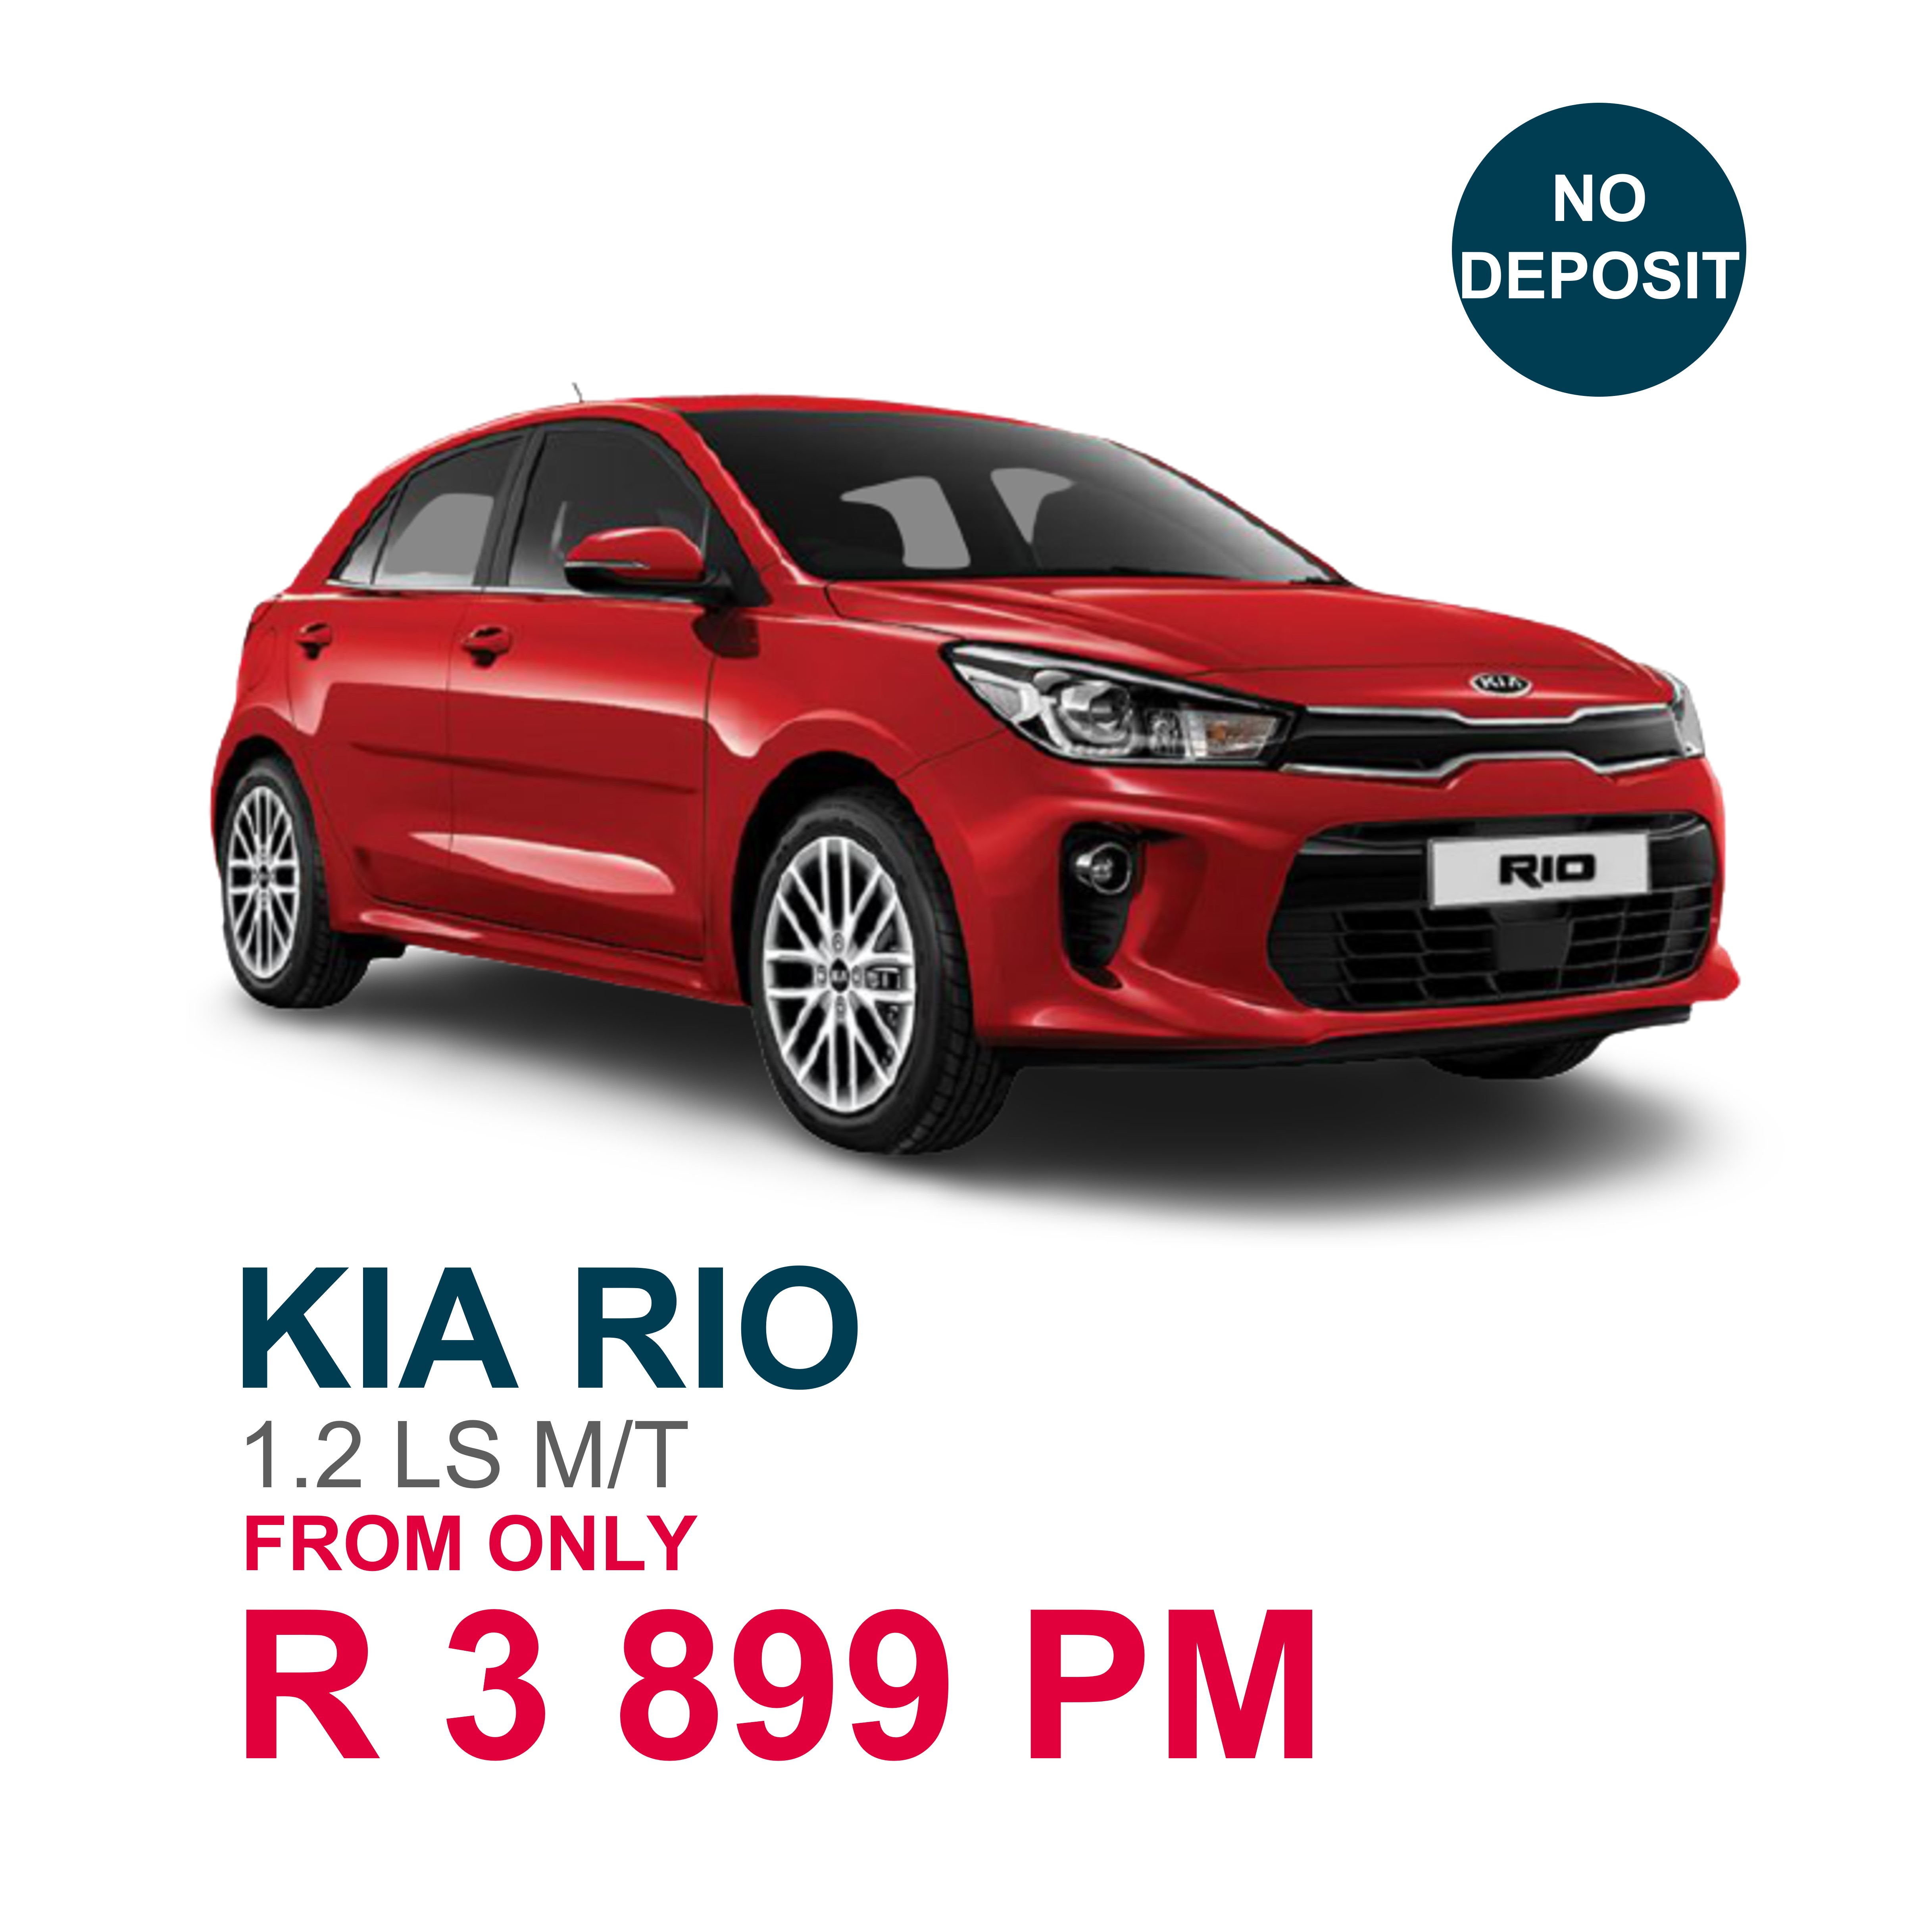 kia-rio-1-2-m-t-from-only-r3-899pm